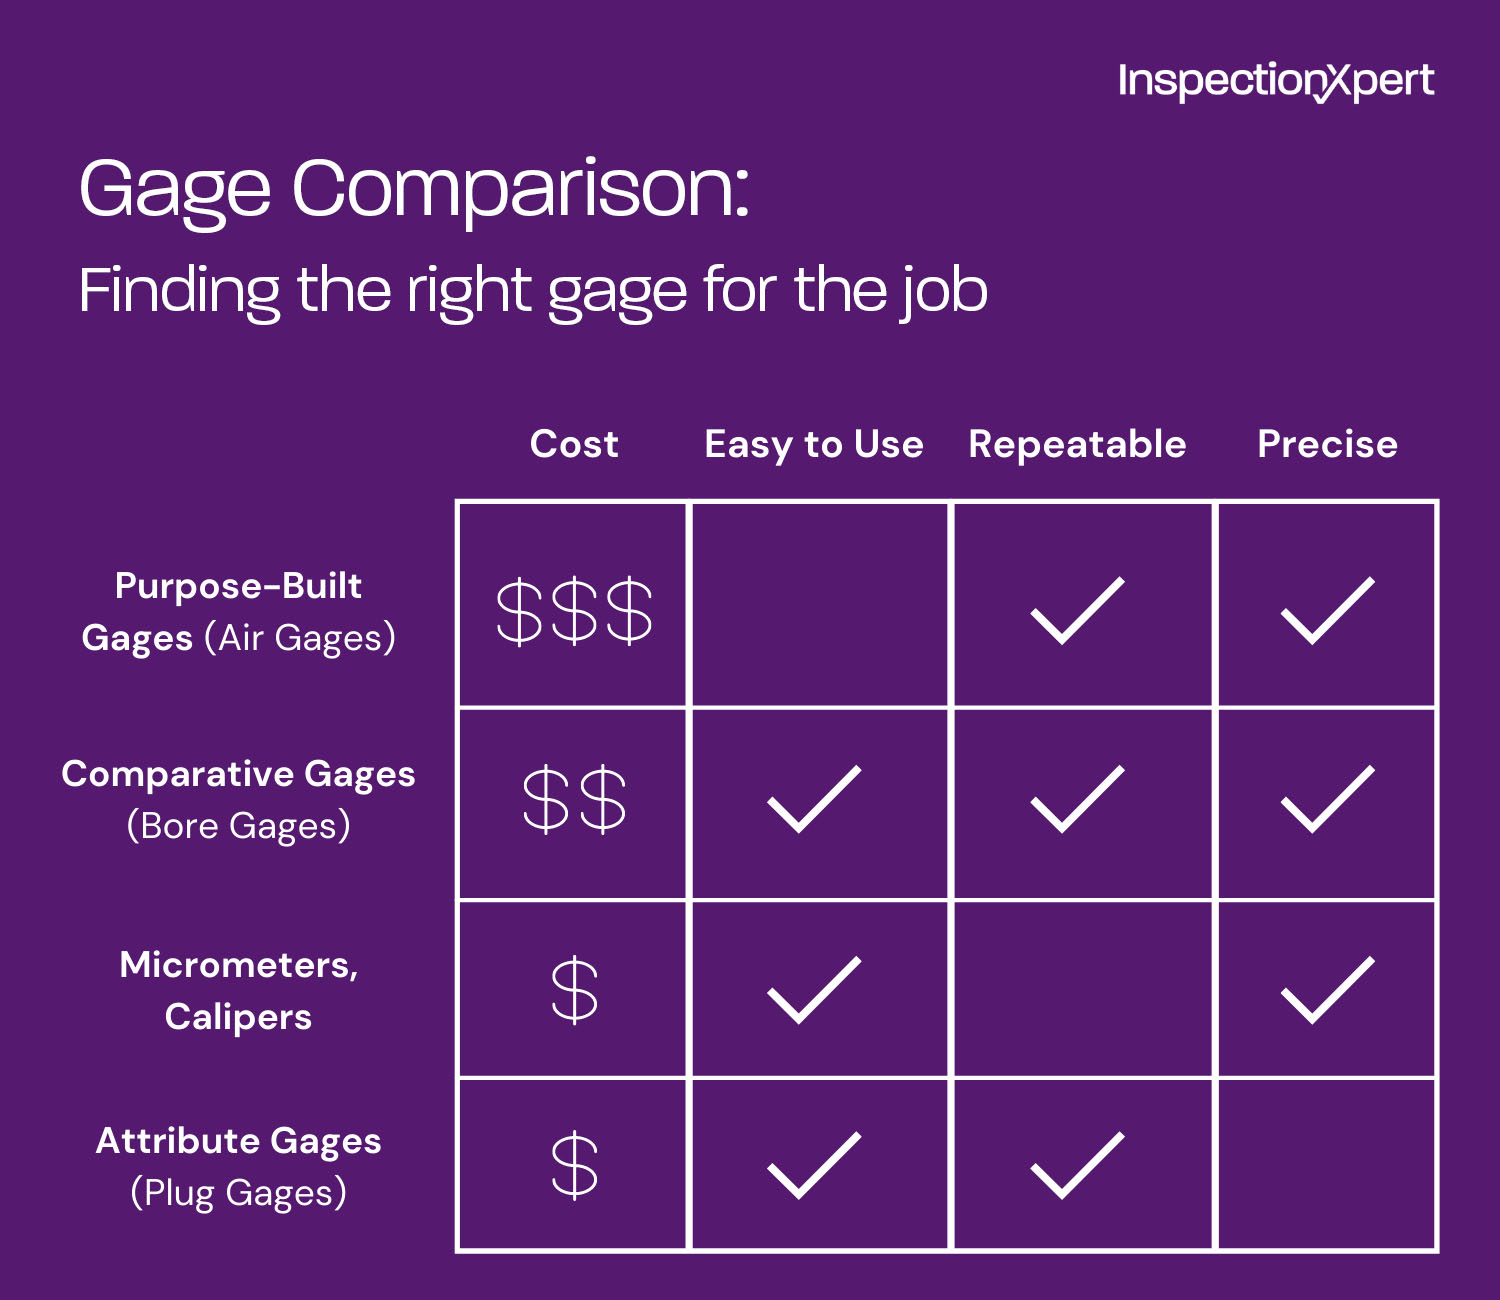 Chart comparing gage types, cost, precision, and other factors